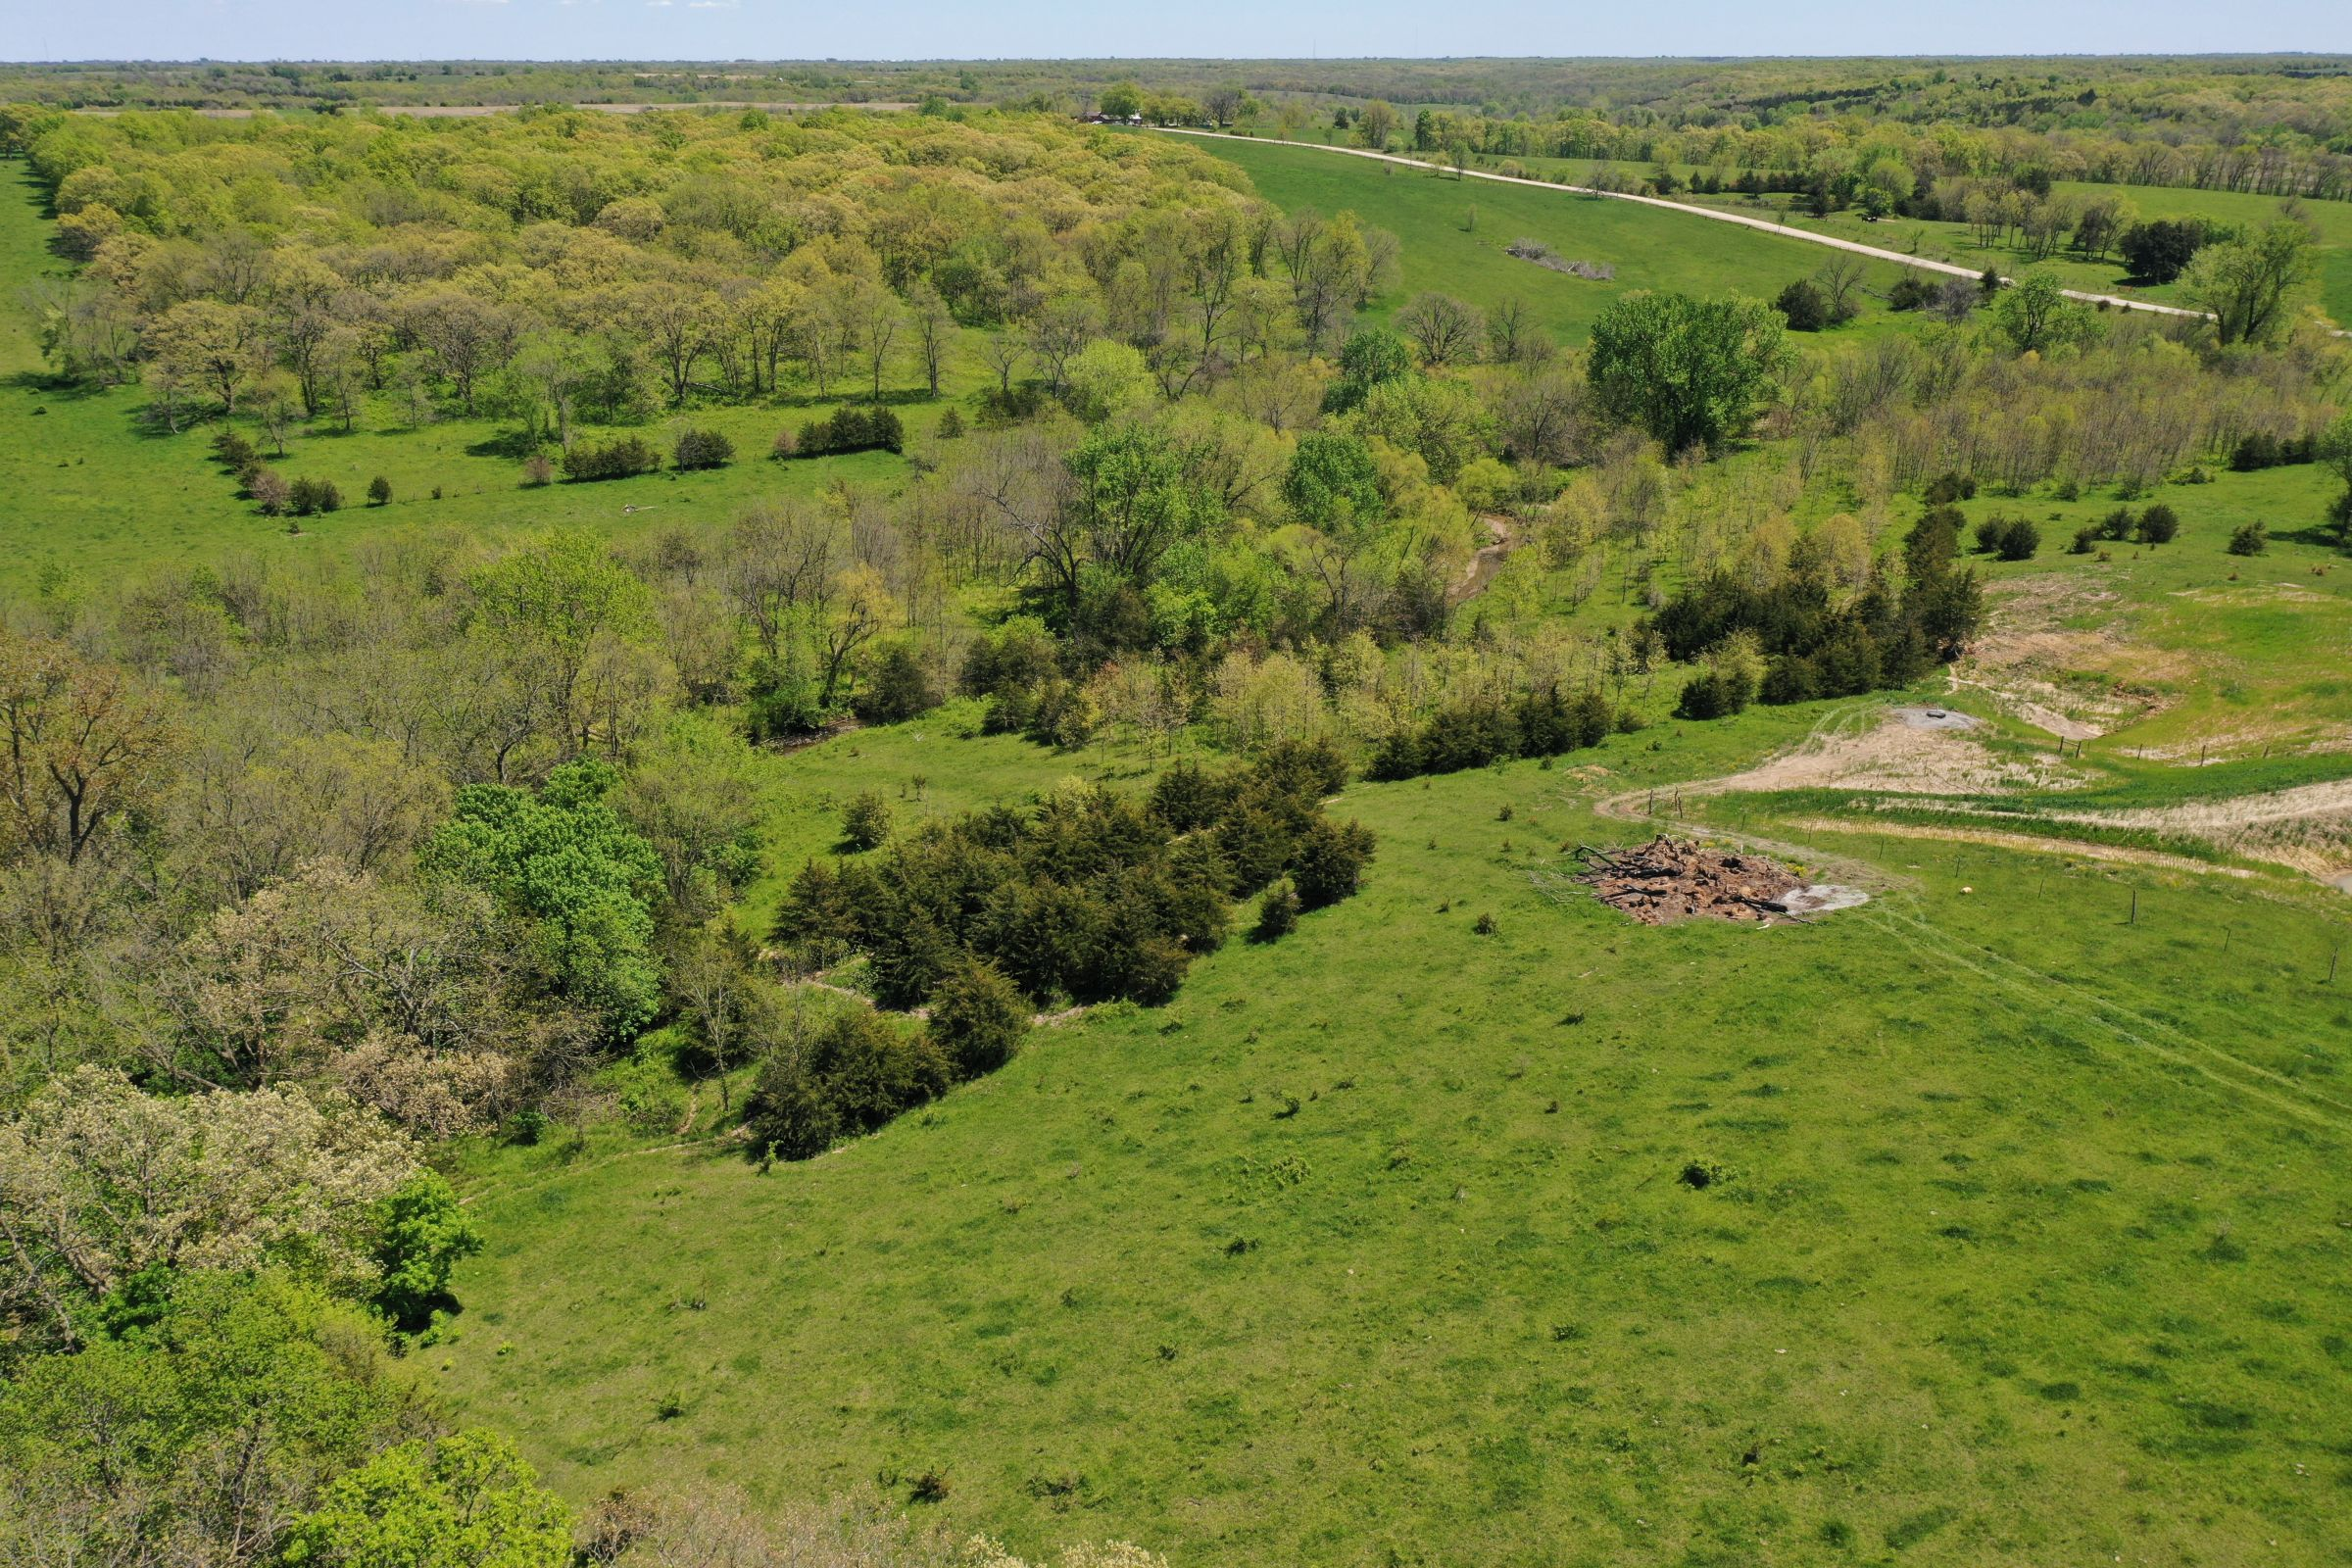 land-decatur-county-iowa-99-acres-listing-number-15525-4-2021-05-14-174321.JPG